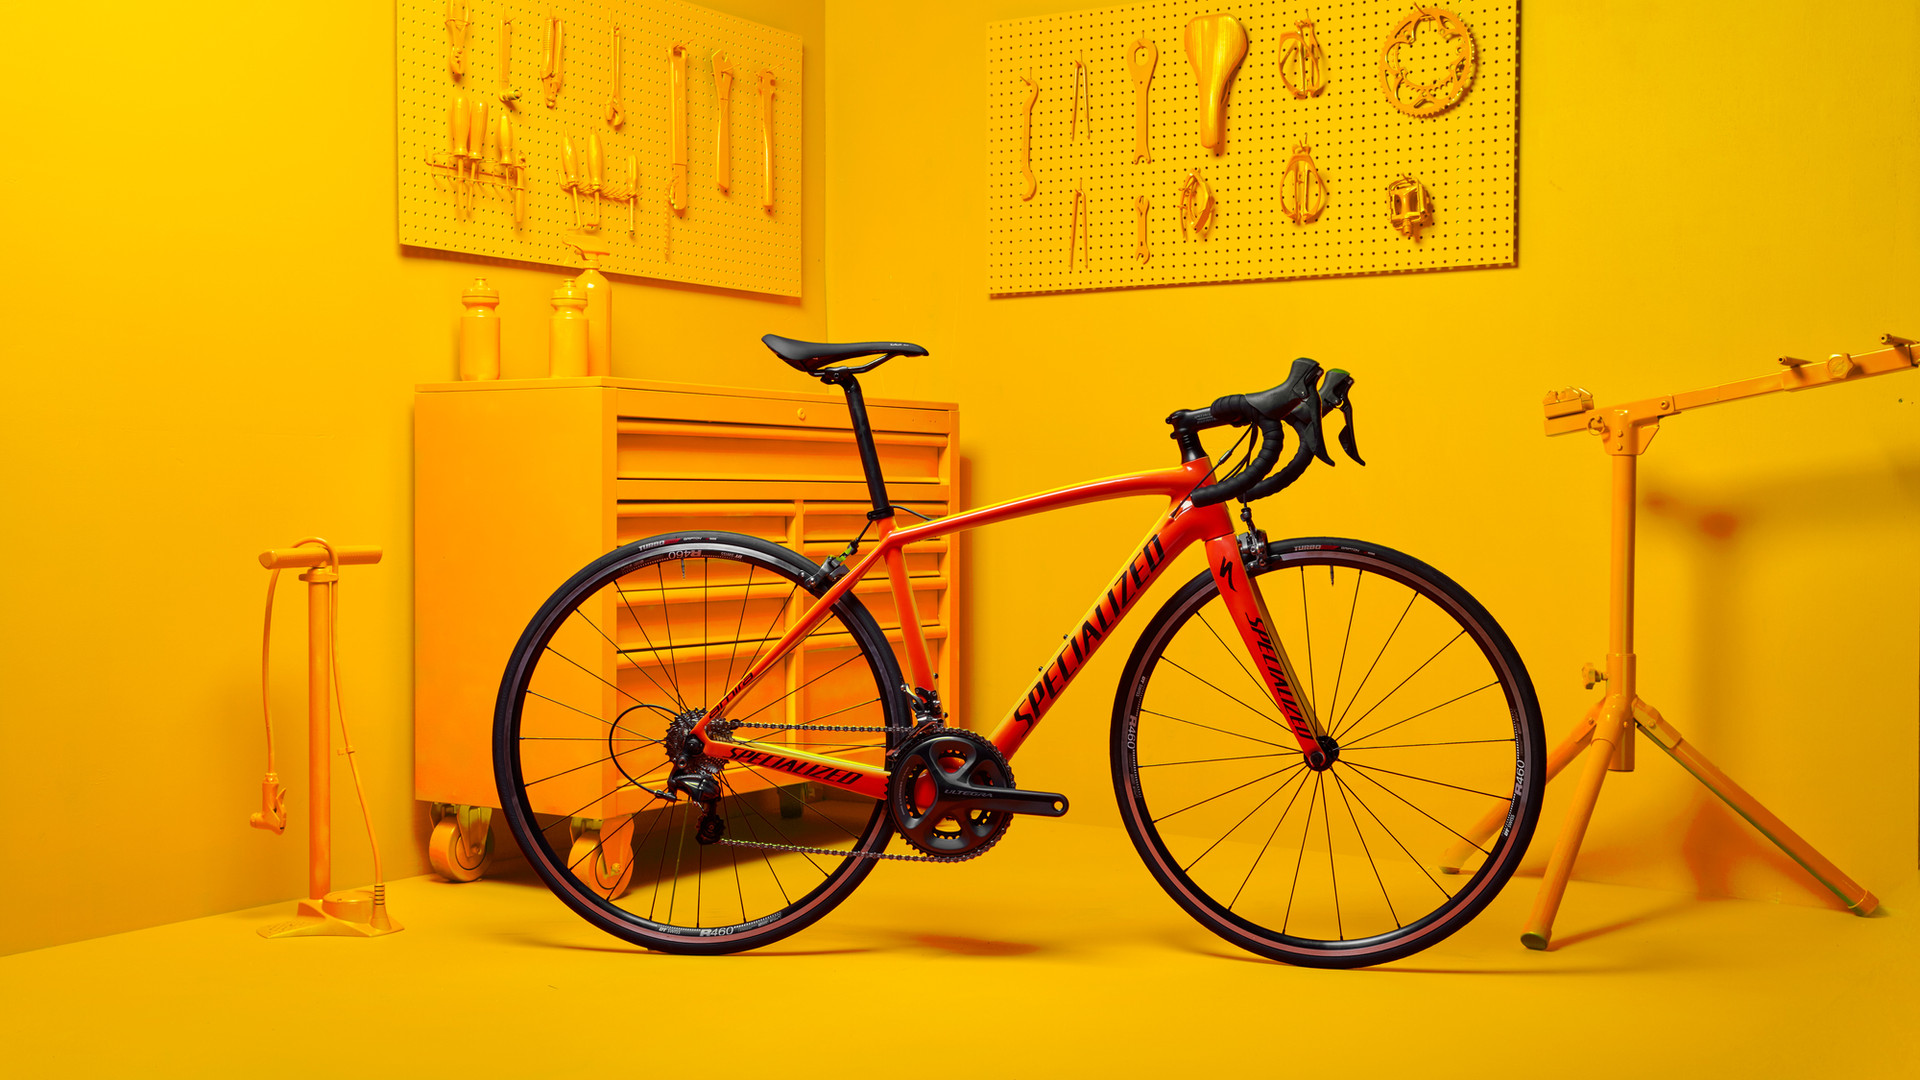 SPEC_OLYMPIC0232_BIKE1_YELLOW.jpg